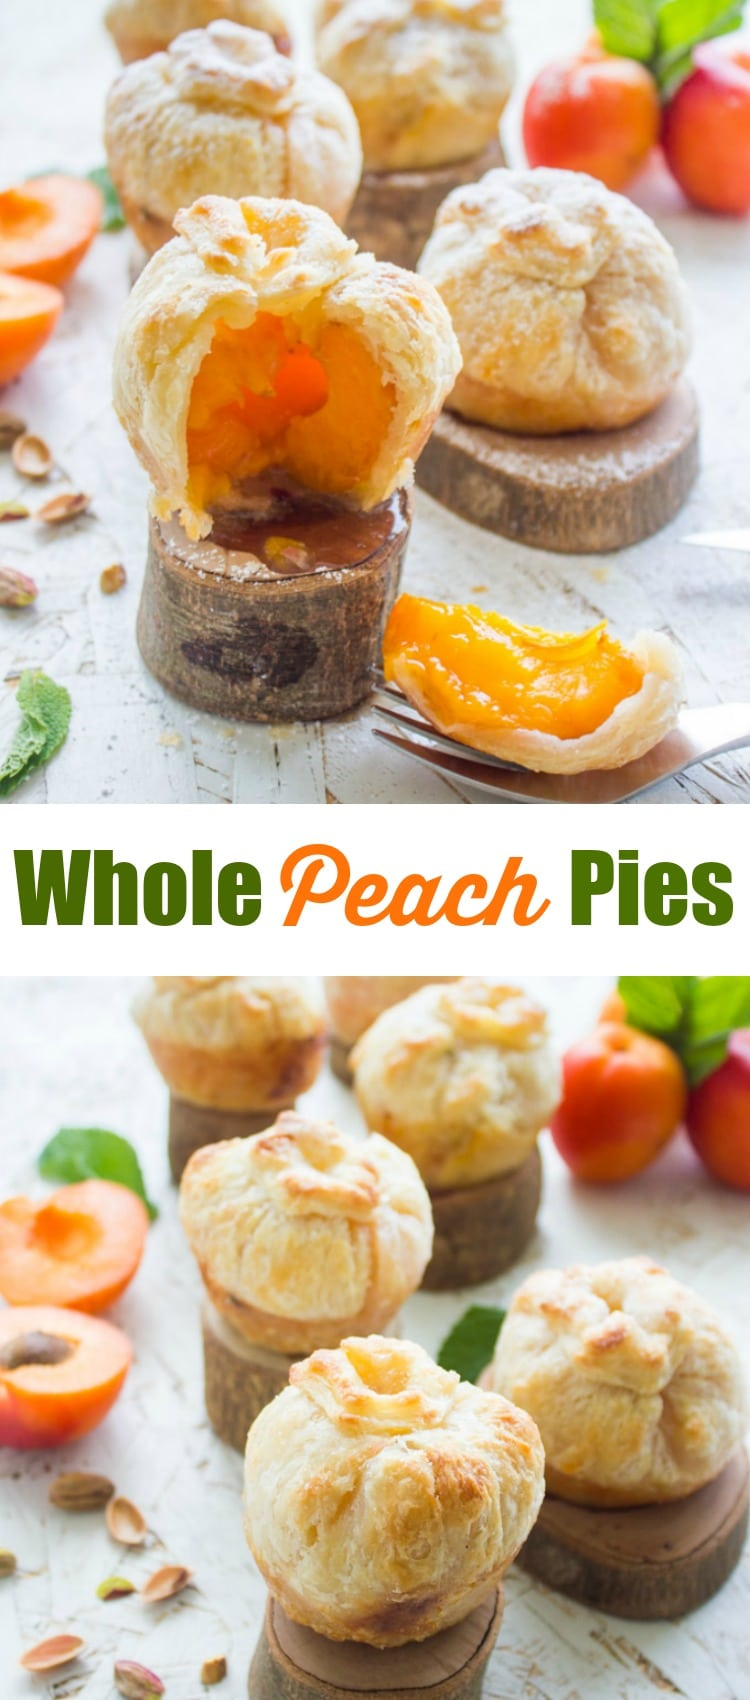 Whole Peach & Apricot Pies | This summer, why not serve your guests an individual whole peach pie or apricot pie instead of a slice of traditional double-crust stonefruit pie? It makes for a prettier presentation and takes way less time to bake! #peachpie, #apricotpie, #stonefruitdesserts